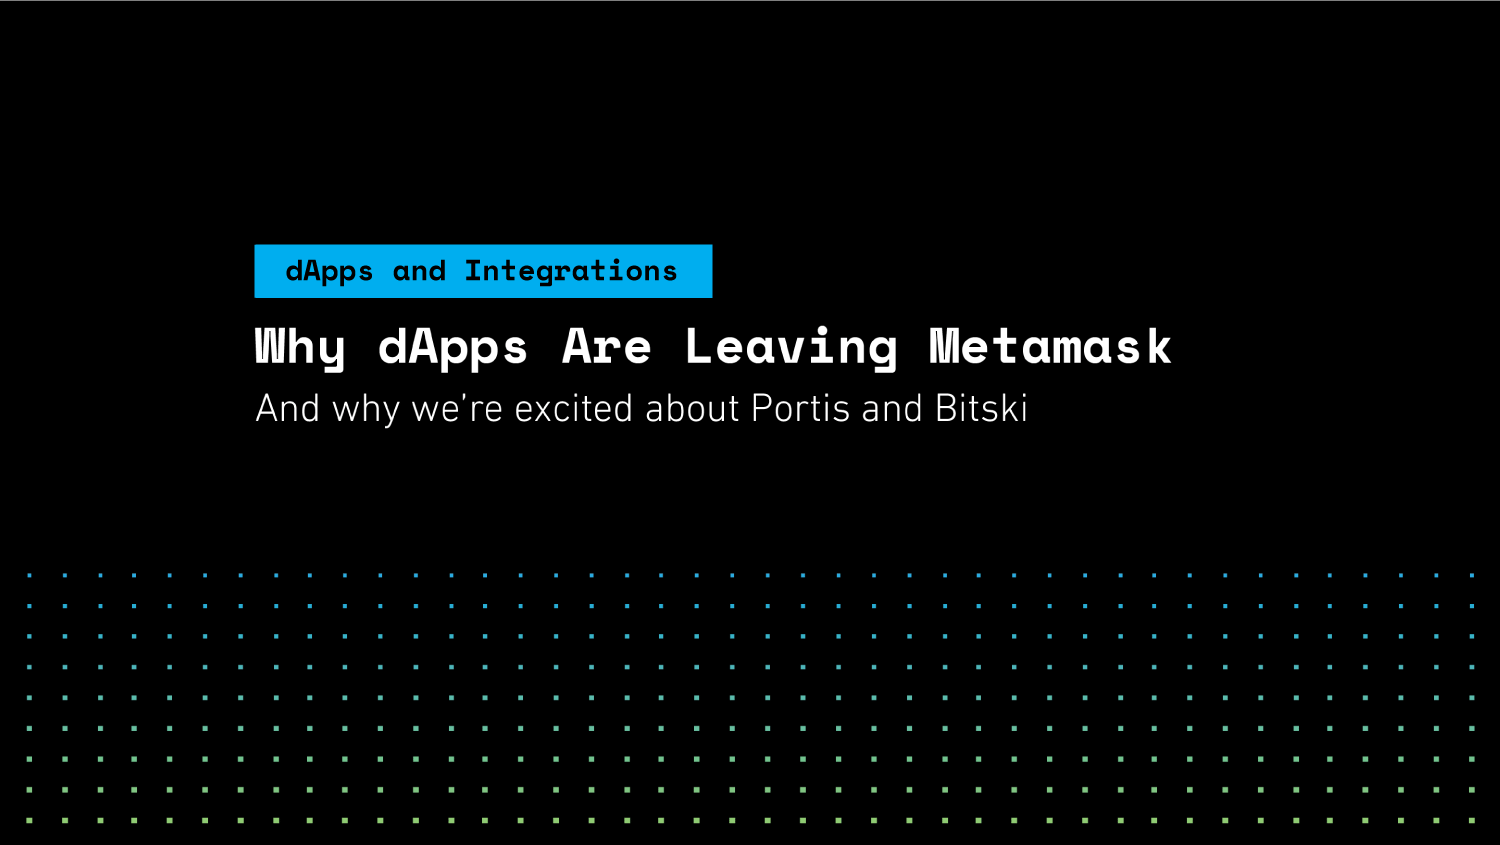 Why dApps are Leaving MetaMask